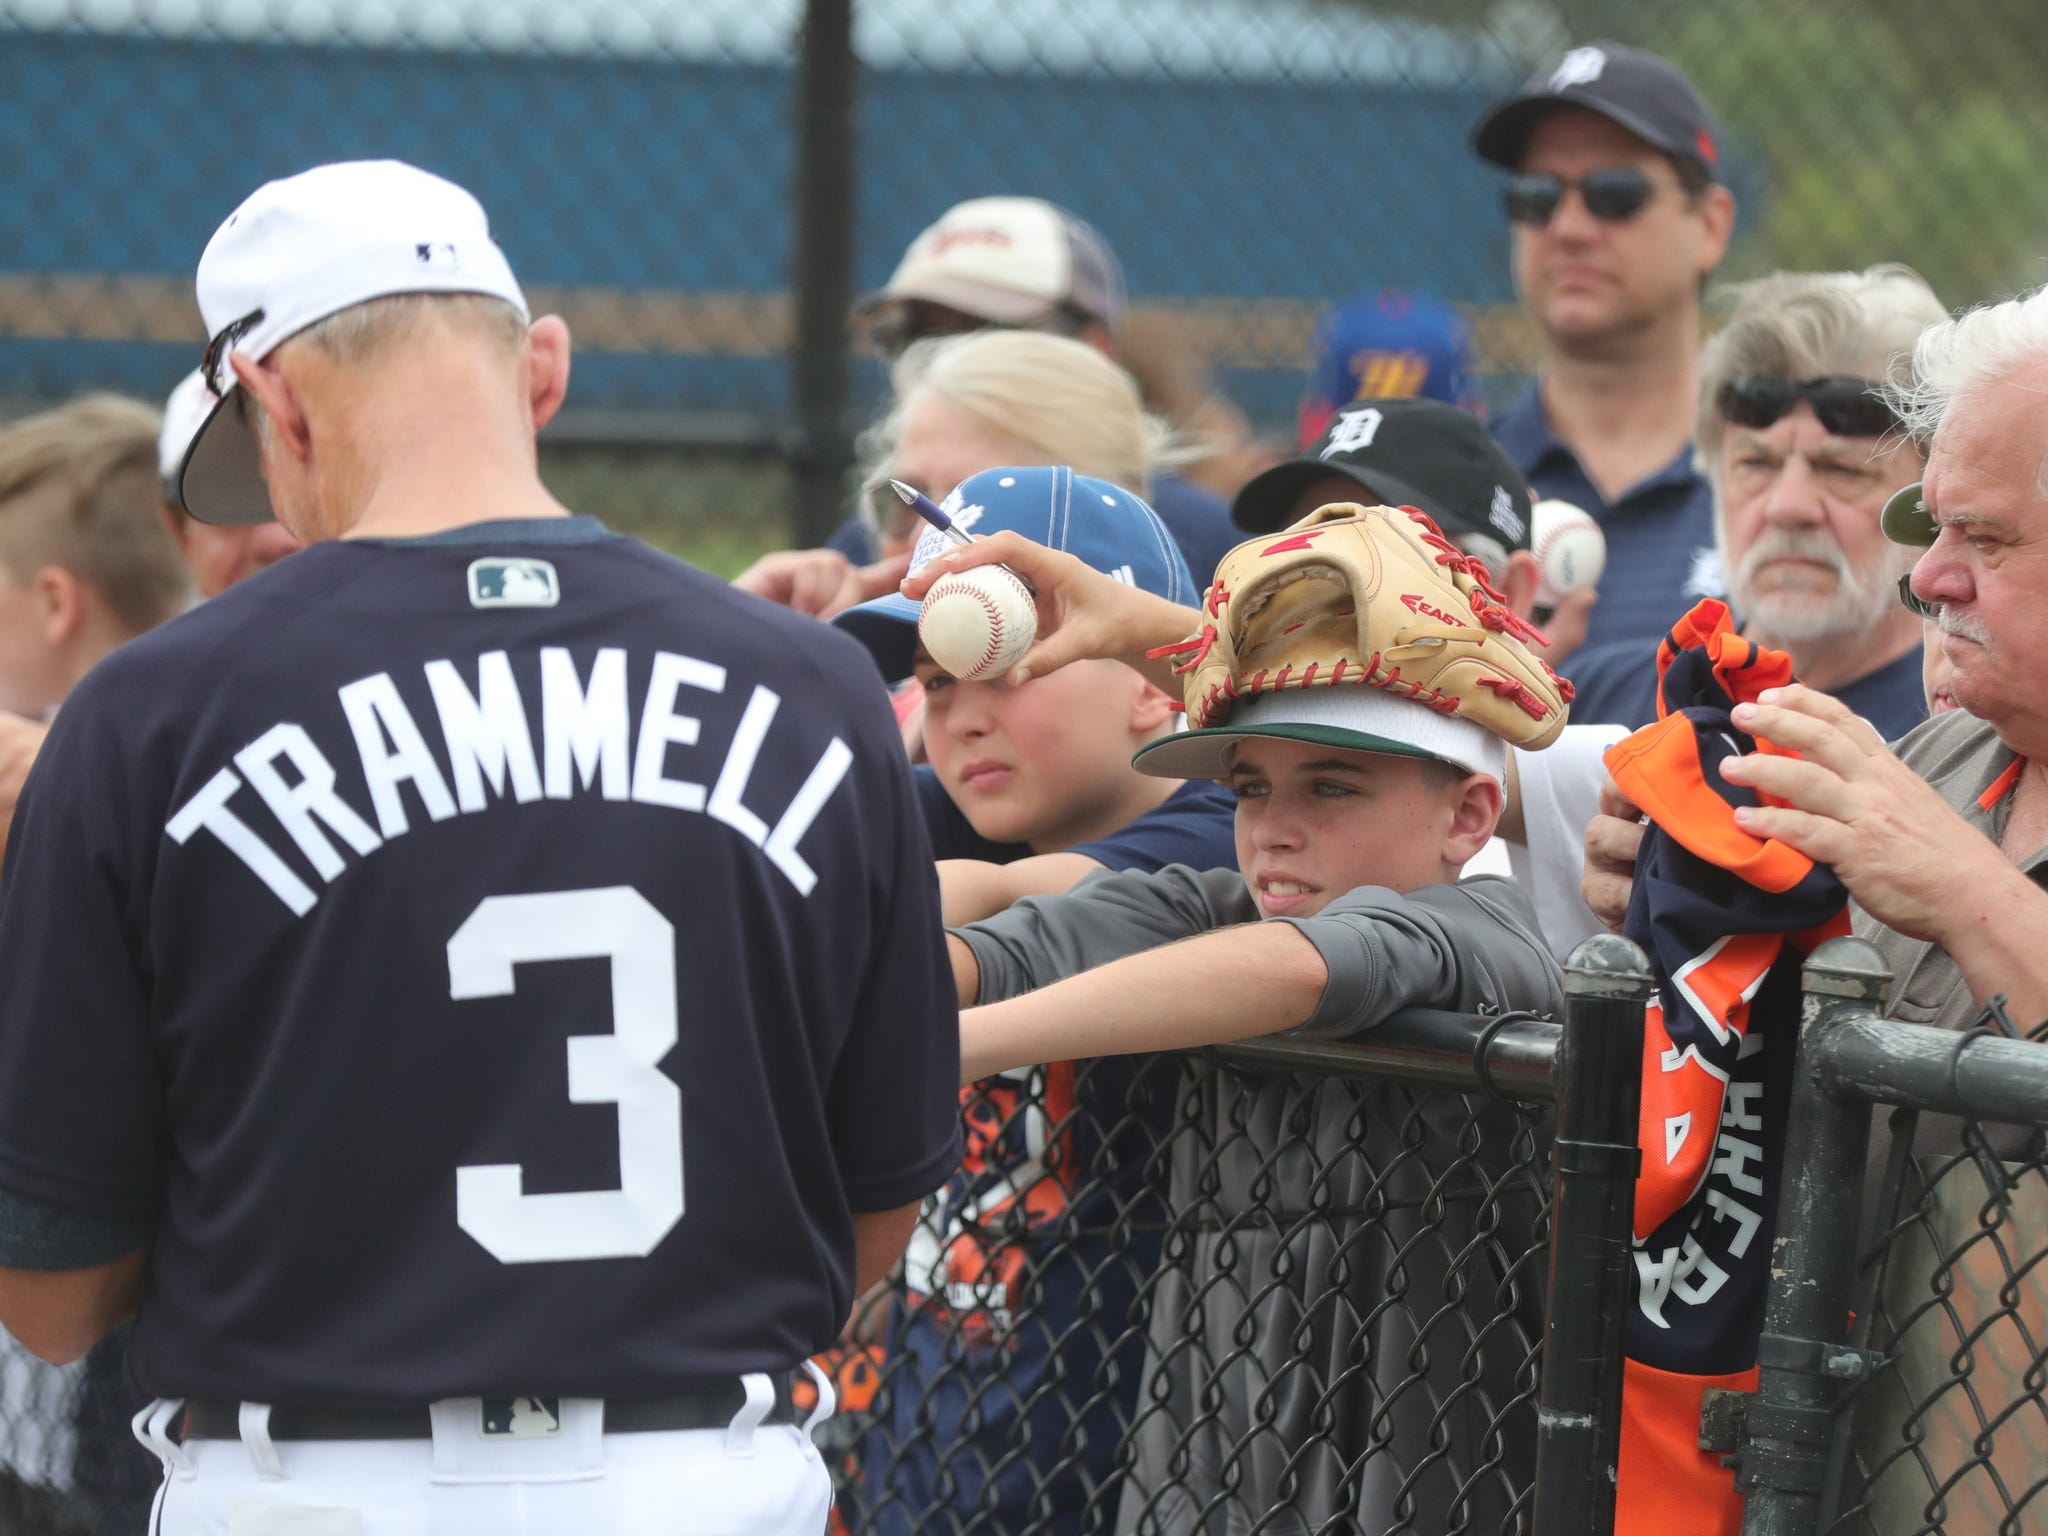 Tigers Hall of Famer Alan Trammell signs autographs before the first full team spring training practice on Monday, Feb. 18, 2019, at Joker Marchant Stadium in Lakeland, Florida.